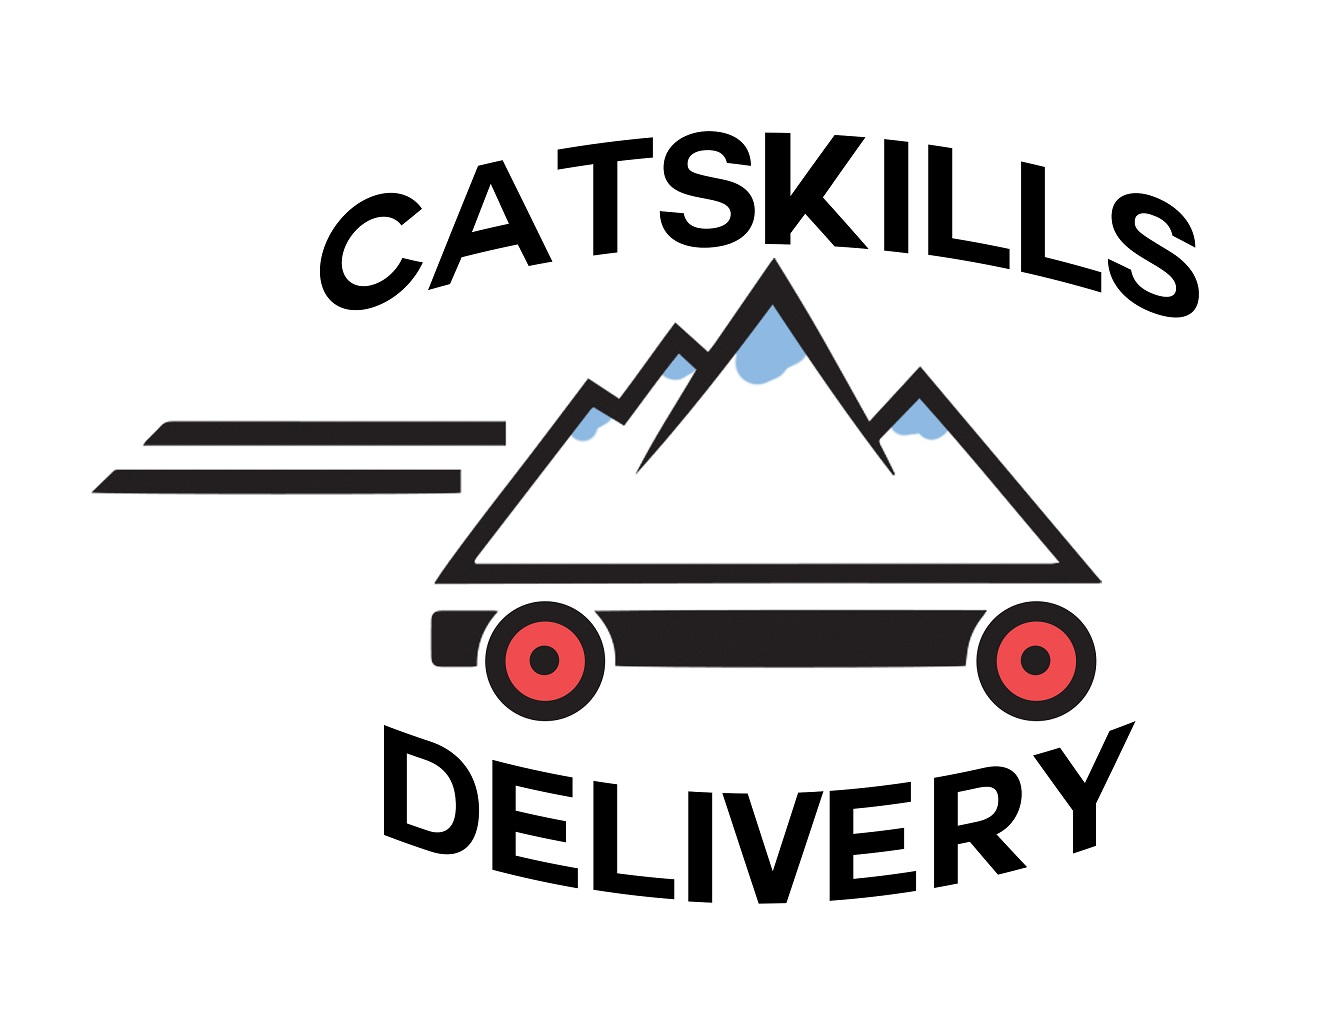 Catskills Food Delivery